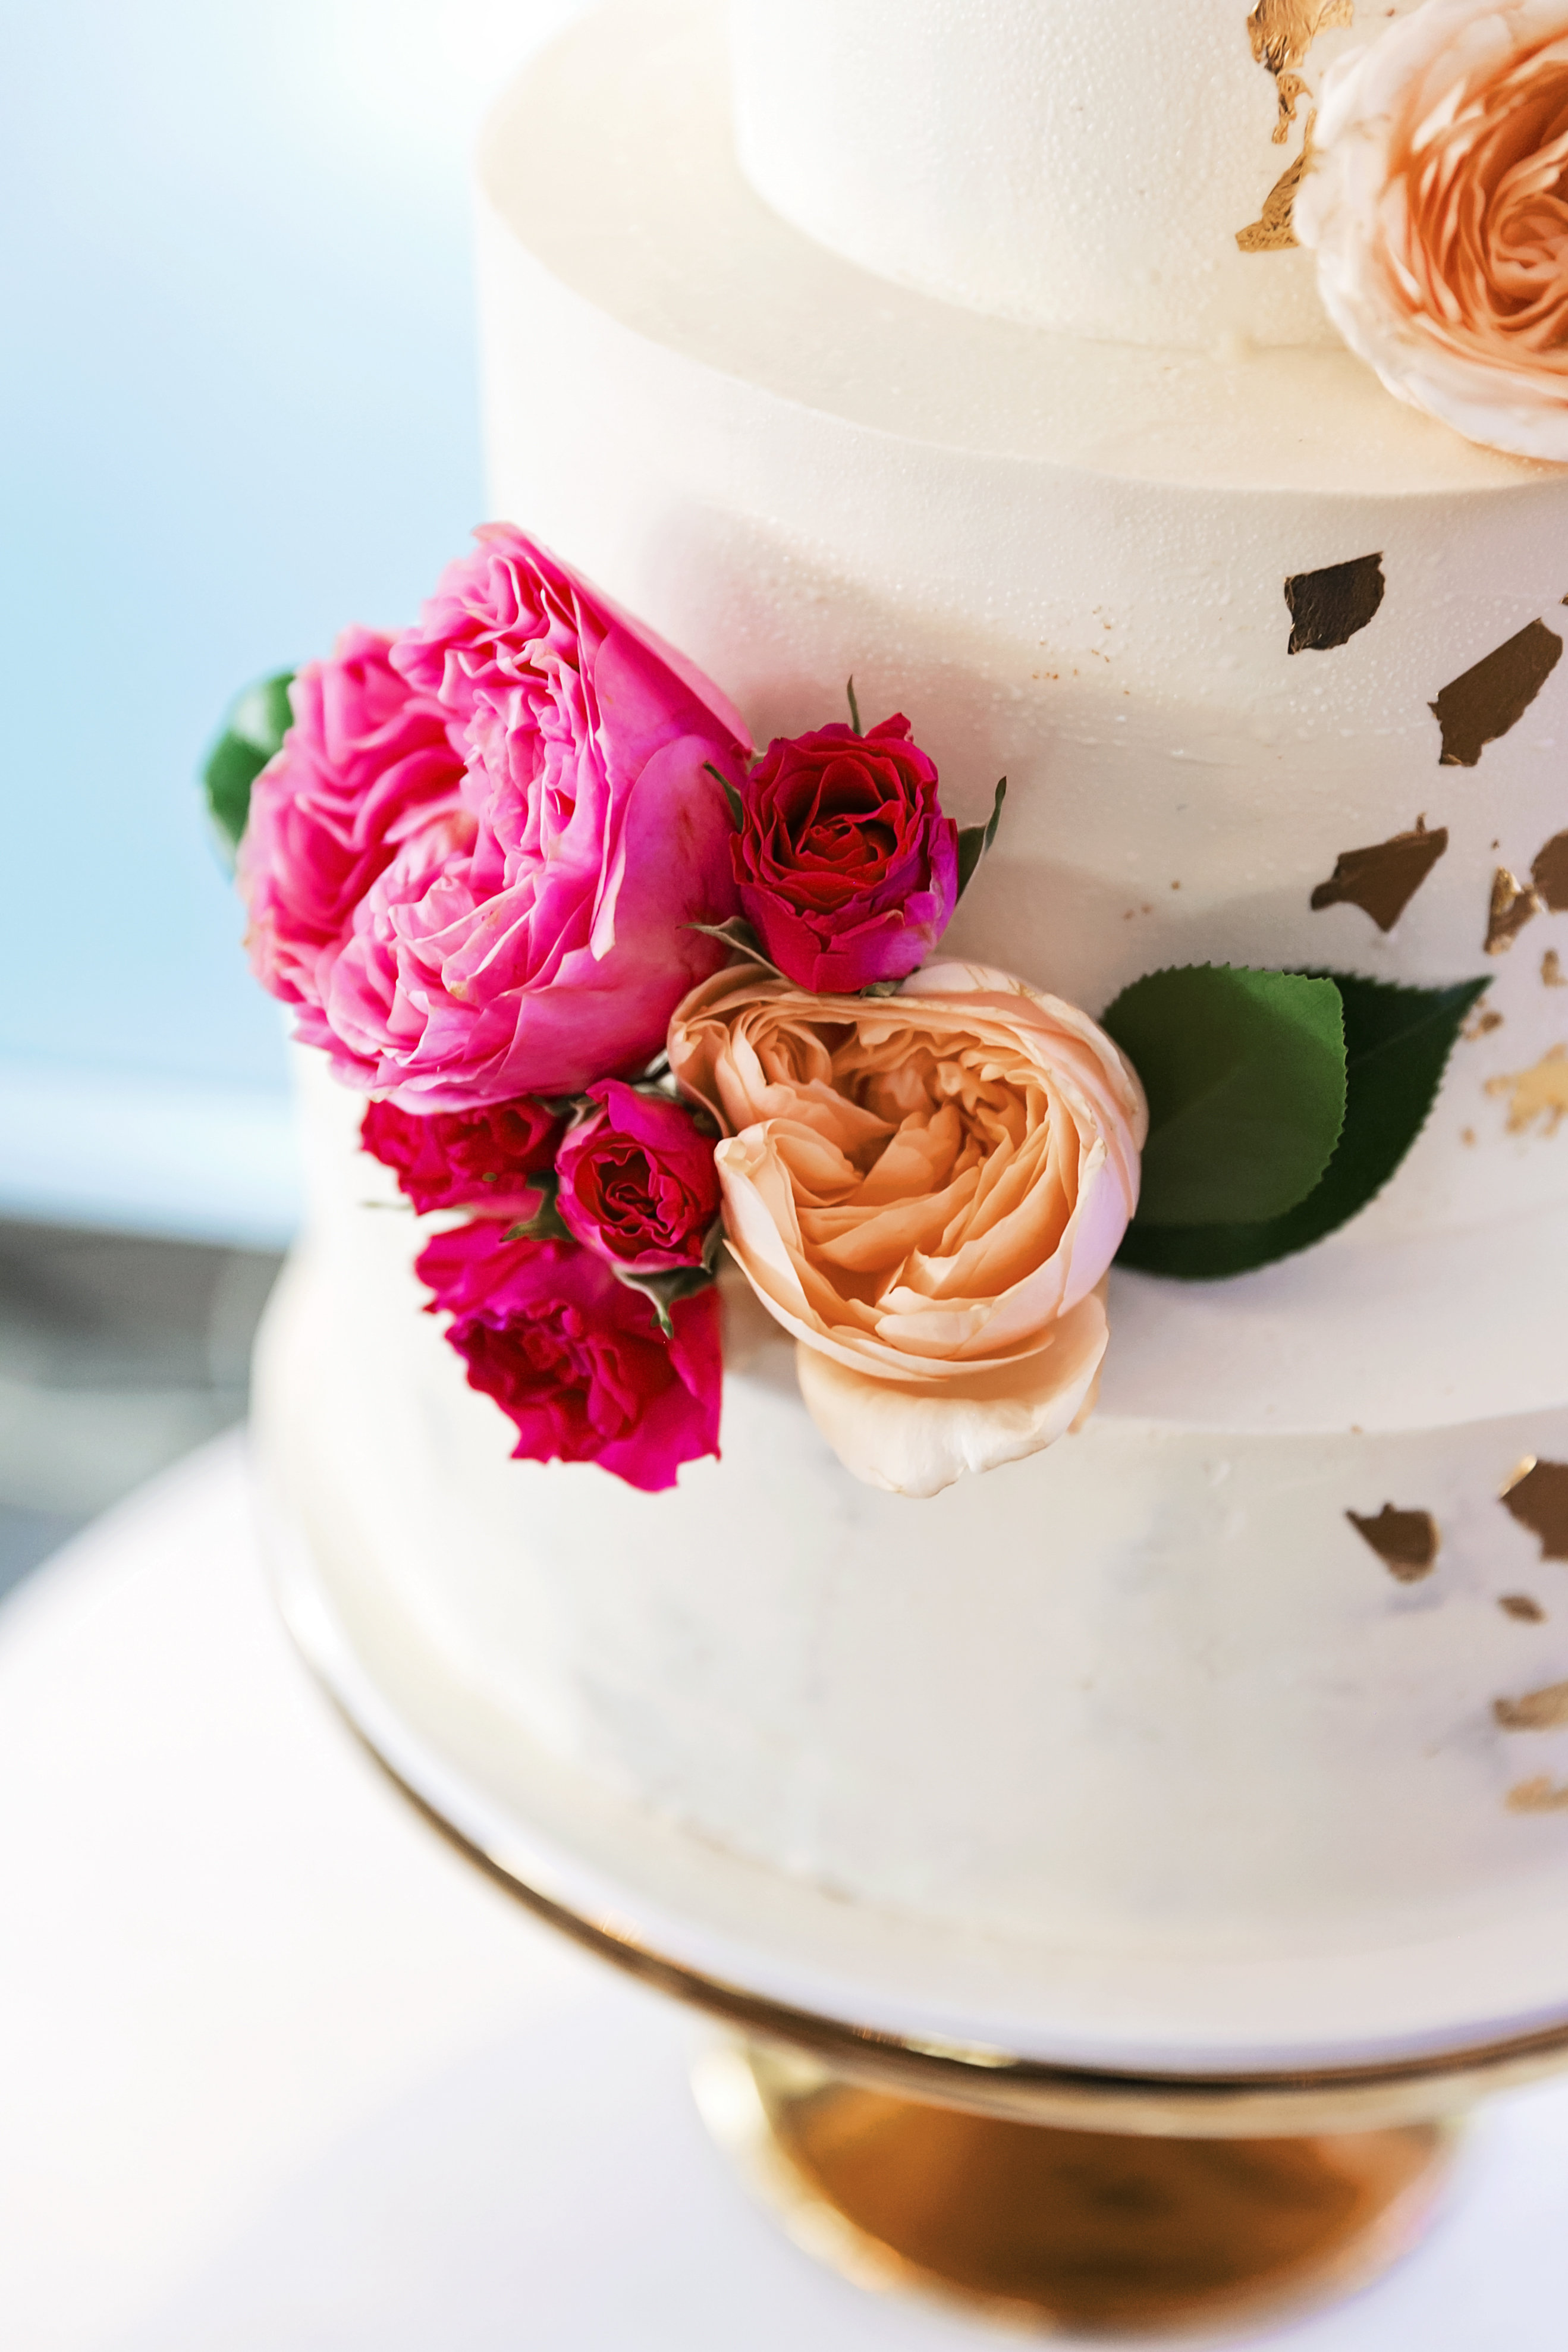 Noosa wedding featuring mordern bright blooms on weding cake.